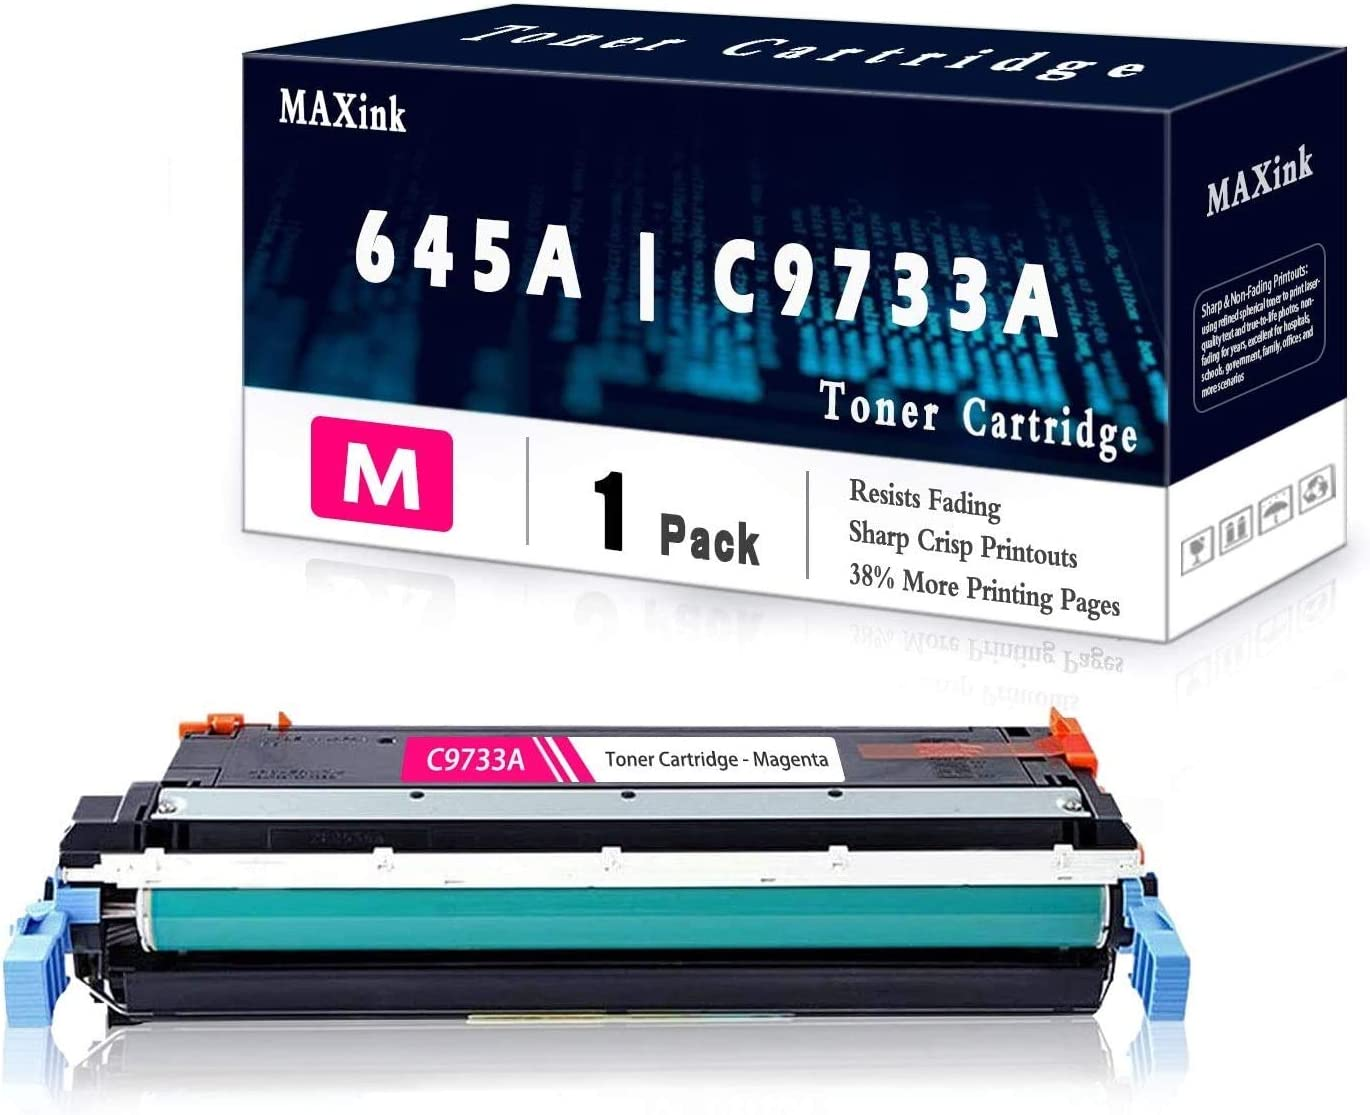 1-Pack Magenta 645A   C9733A Remanufactured Toner Cartridge Replacement for HP Color Laserjet 5550 5550n 5550dn 5550dtn 5550dtn 5500 5500dn 5500dtn 5500hdn Printer.